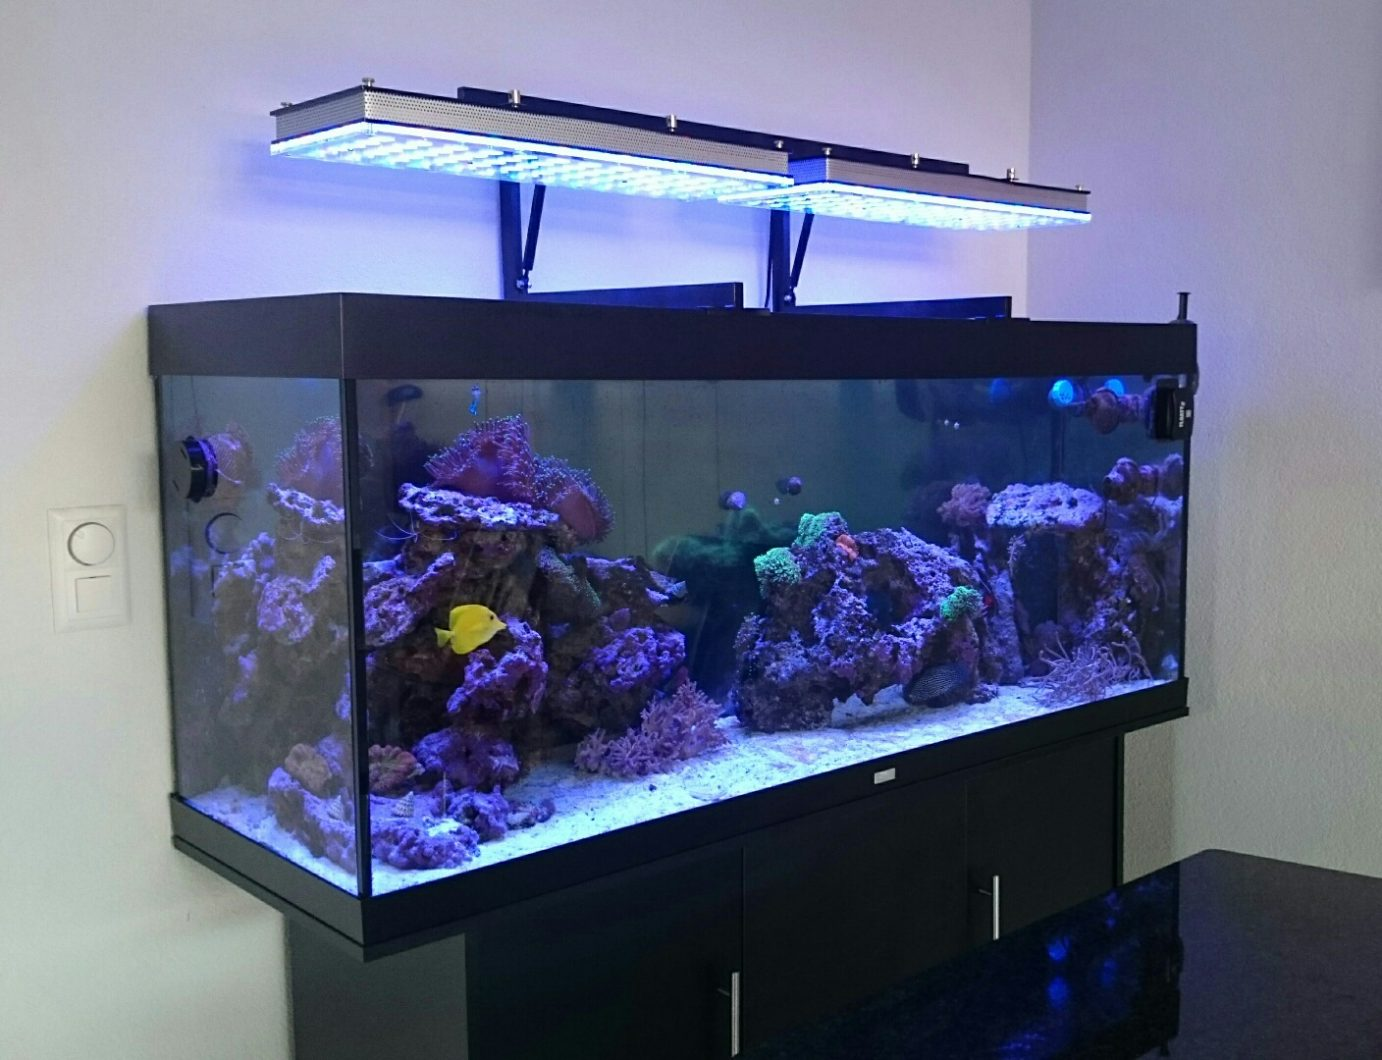 Reef-akvaario-LED-asennus-arm